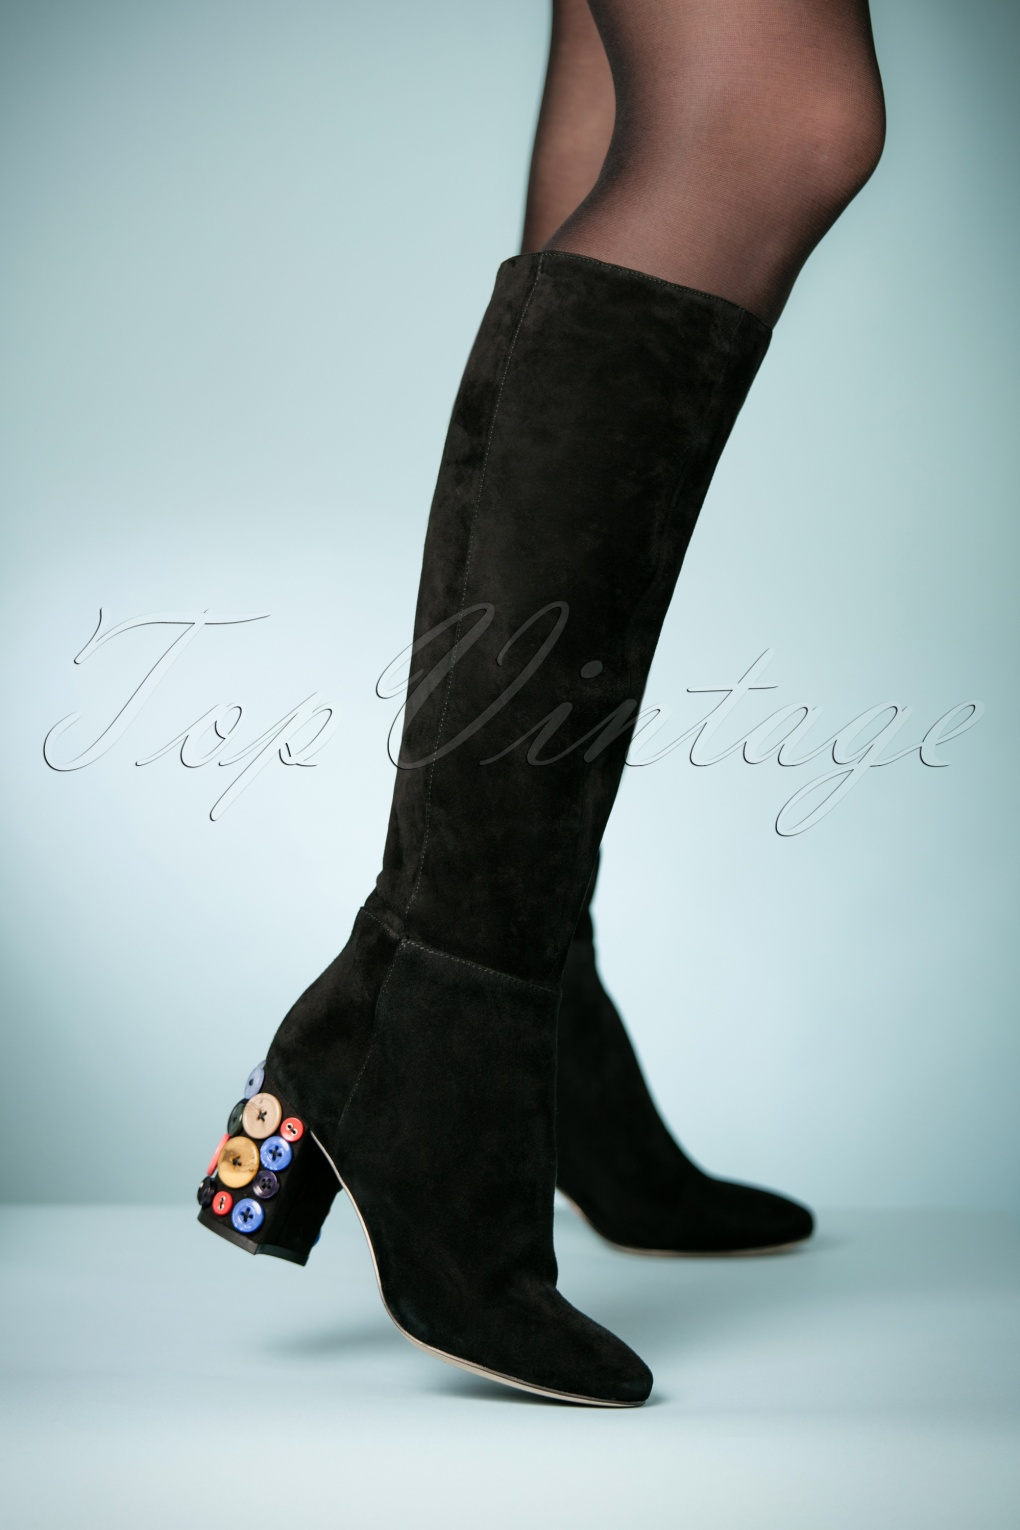 Retro Boots, Granny Boots, 70s Boots 70s Saari Suede Boots in Black £191.33 AT vintagedancer.com